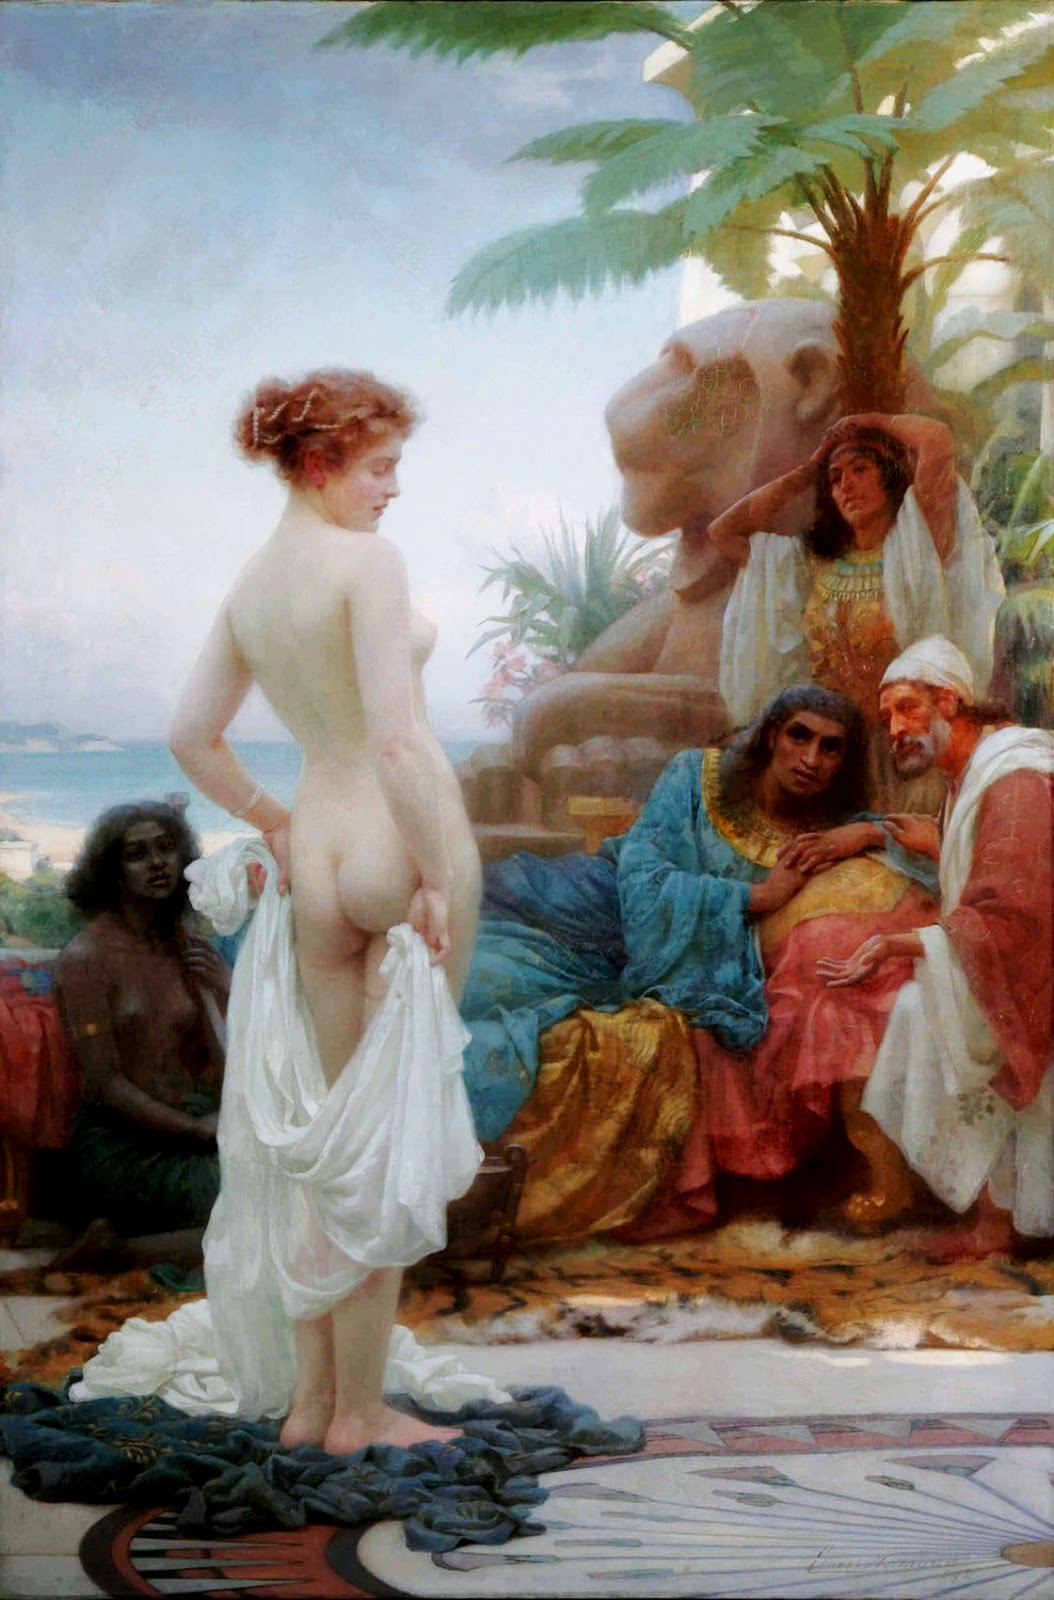 It is likely that Vashti refused to appear because she would have been humiliated in some way.